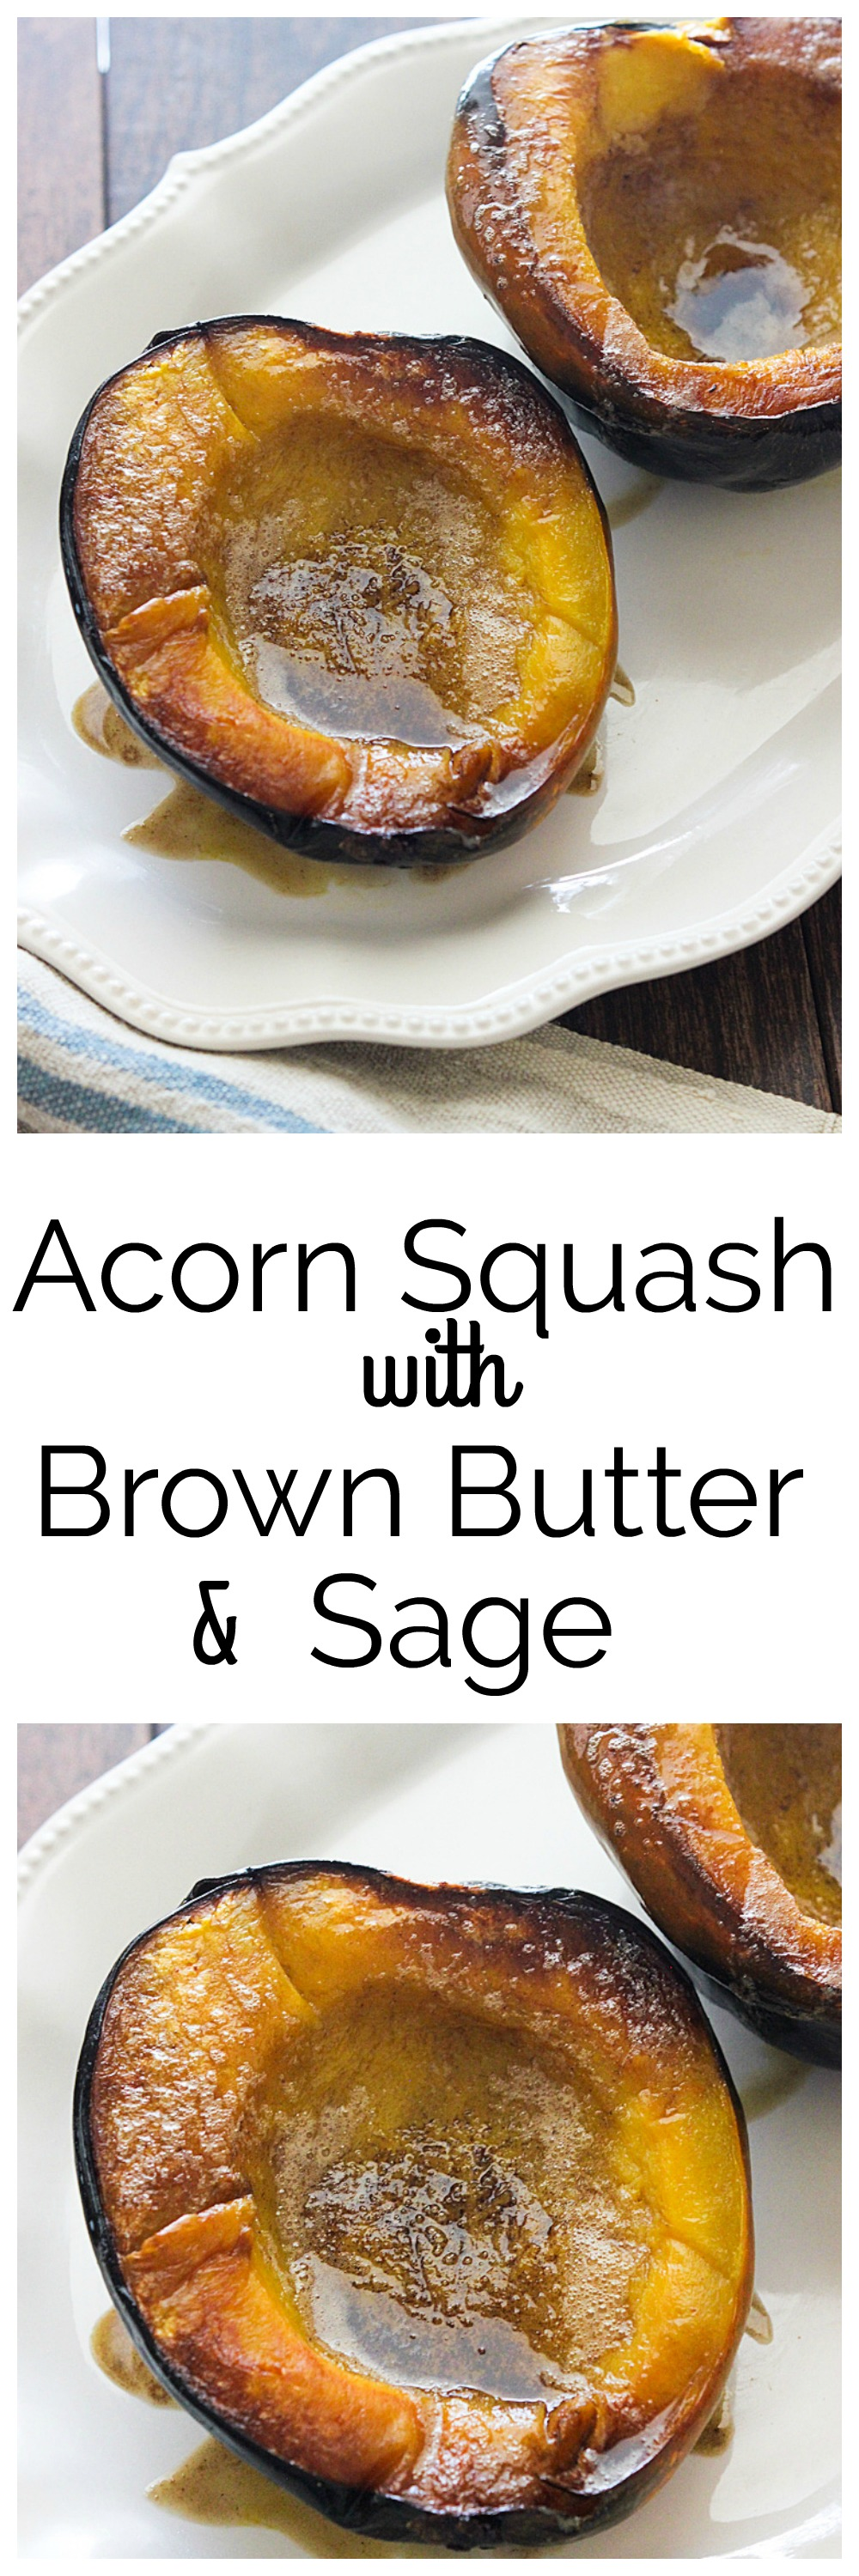 Acorn Squash with Brown Butter and Sage